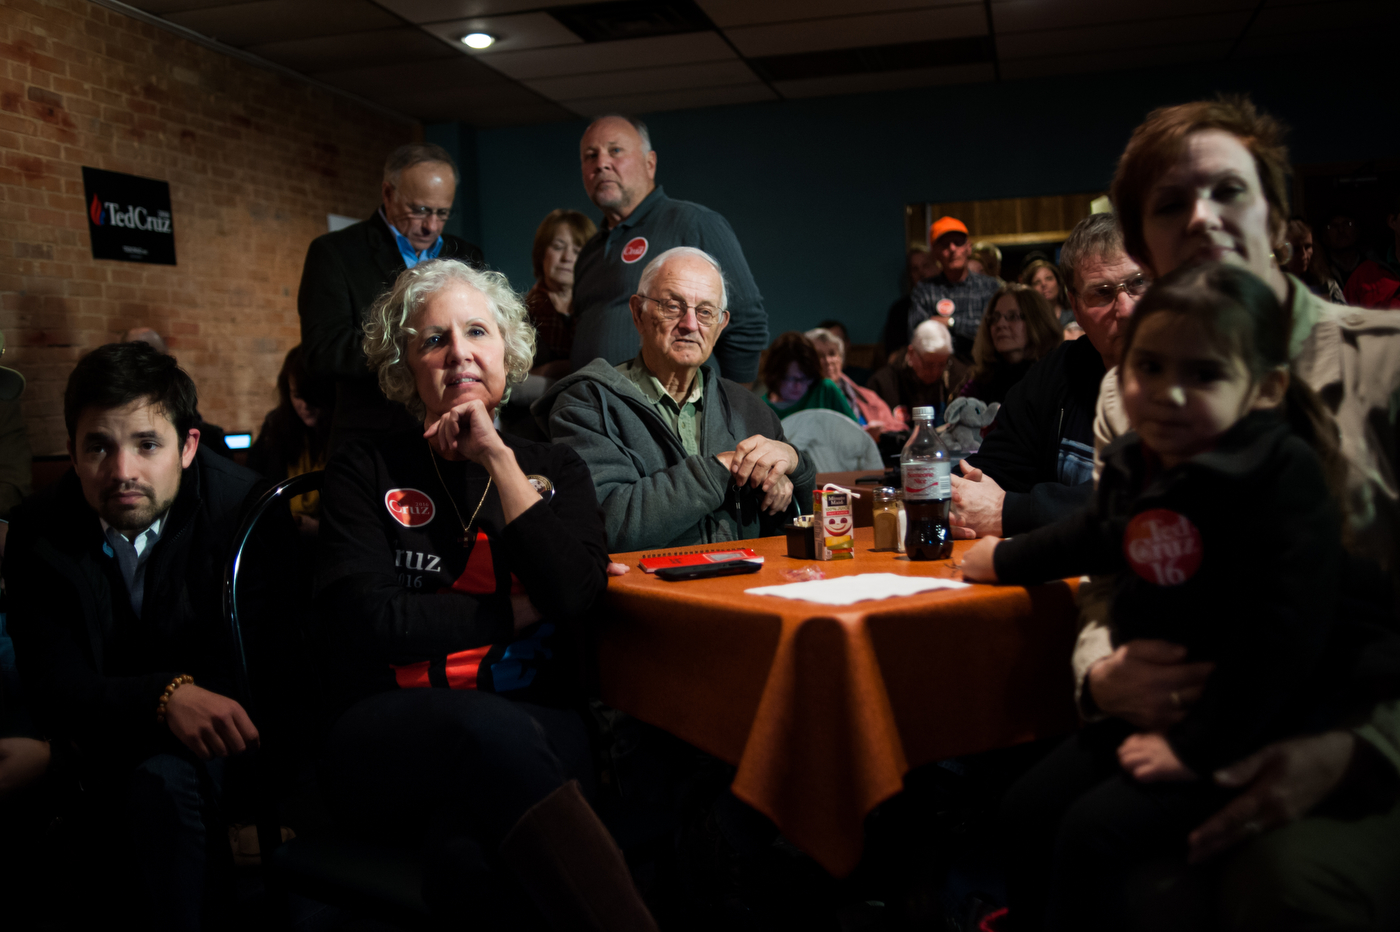 Supporters listen as Republican U.S. presidential candidate Ted Cruz does a live television interview ahead of his campaign stop at Prime Time Restaurant in Guthrie Center, Iowa on January 4, 2016.